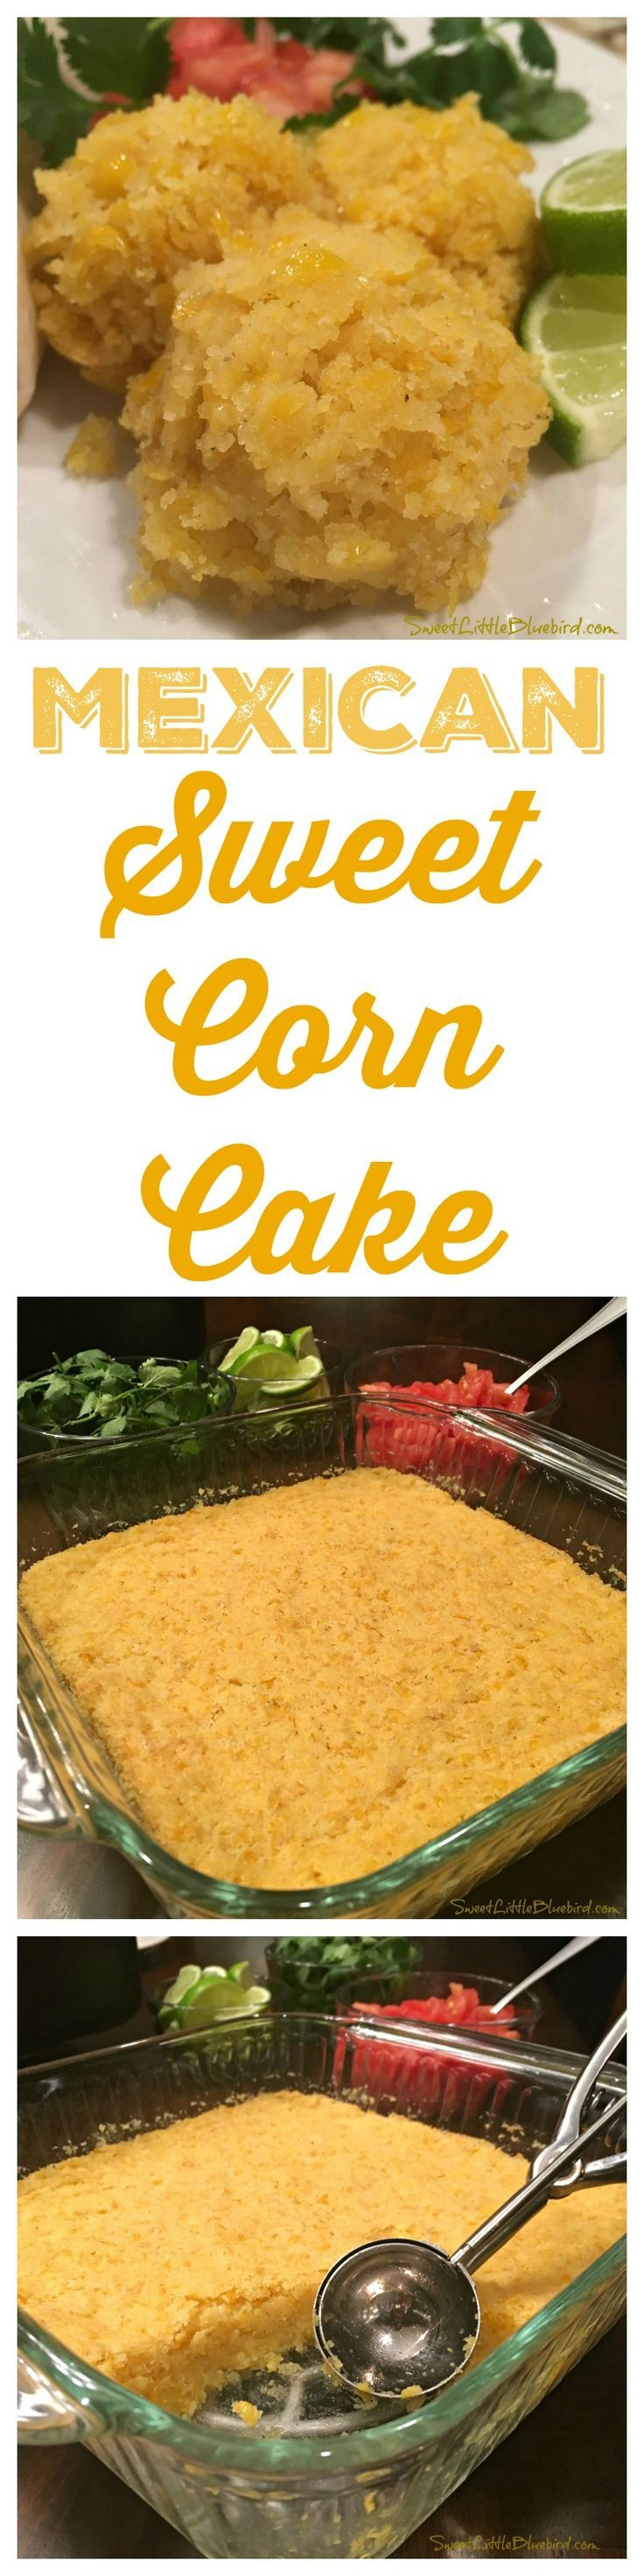 MEXICAN SWEET CORN CAKE - The perfect side dish for any Mexican meal, Sweet Corn Cake! Just like the sweet corn side dish served at your favorite Mexican restaurants like Chi Chi's, Chevys Fresh Mex & El Torito! | SweetLittleBluebird.com